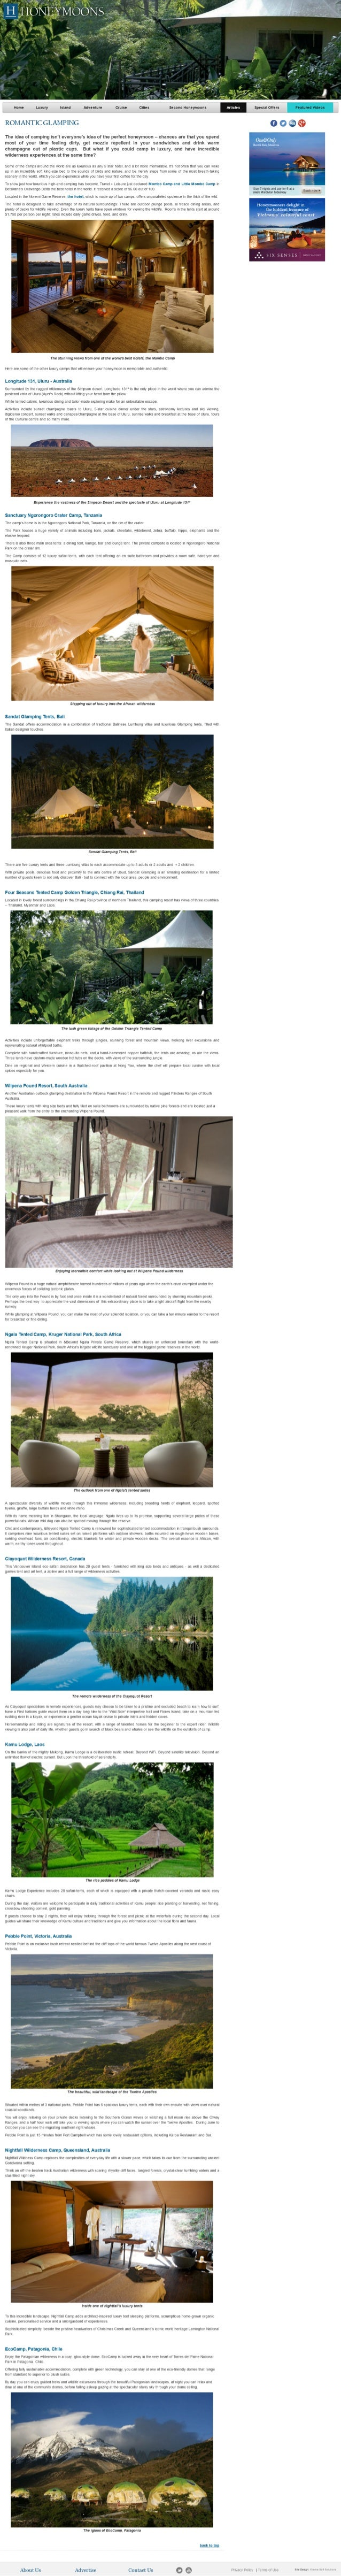 Kamu Lodge featured in  the world's most luxurious tents for honey glamping by Honeymoons, May 2014